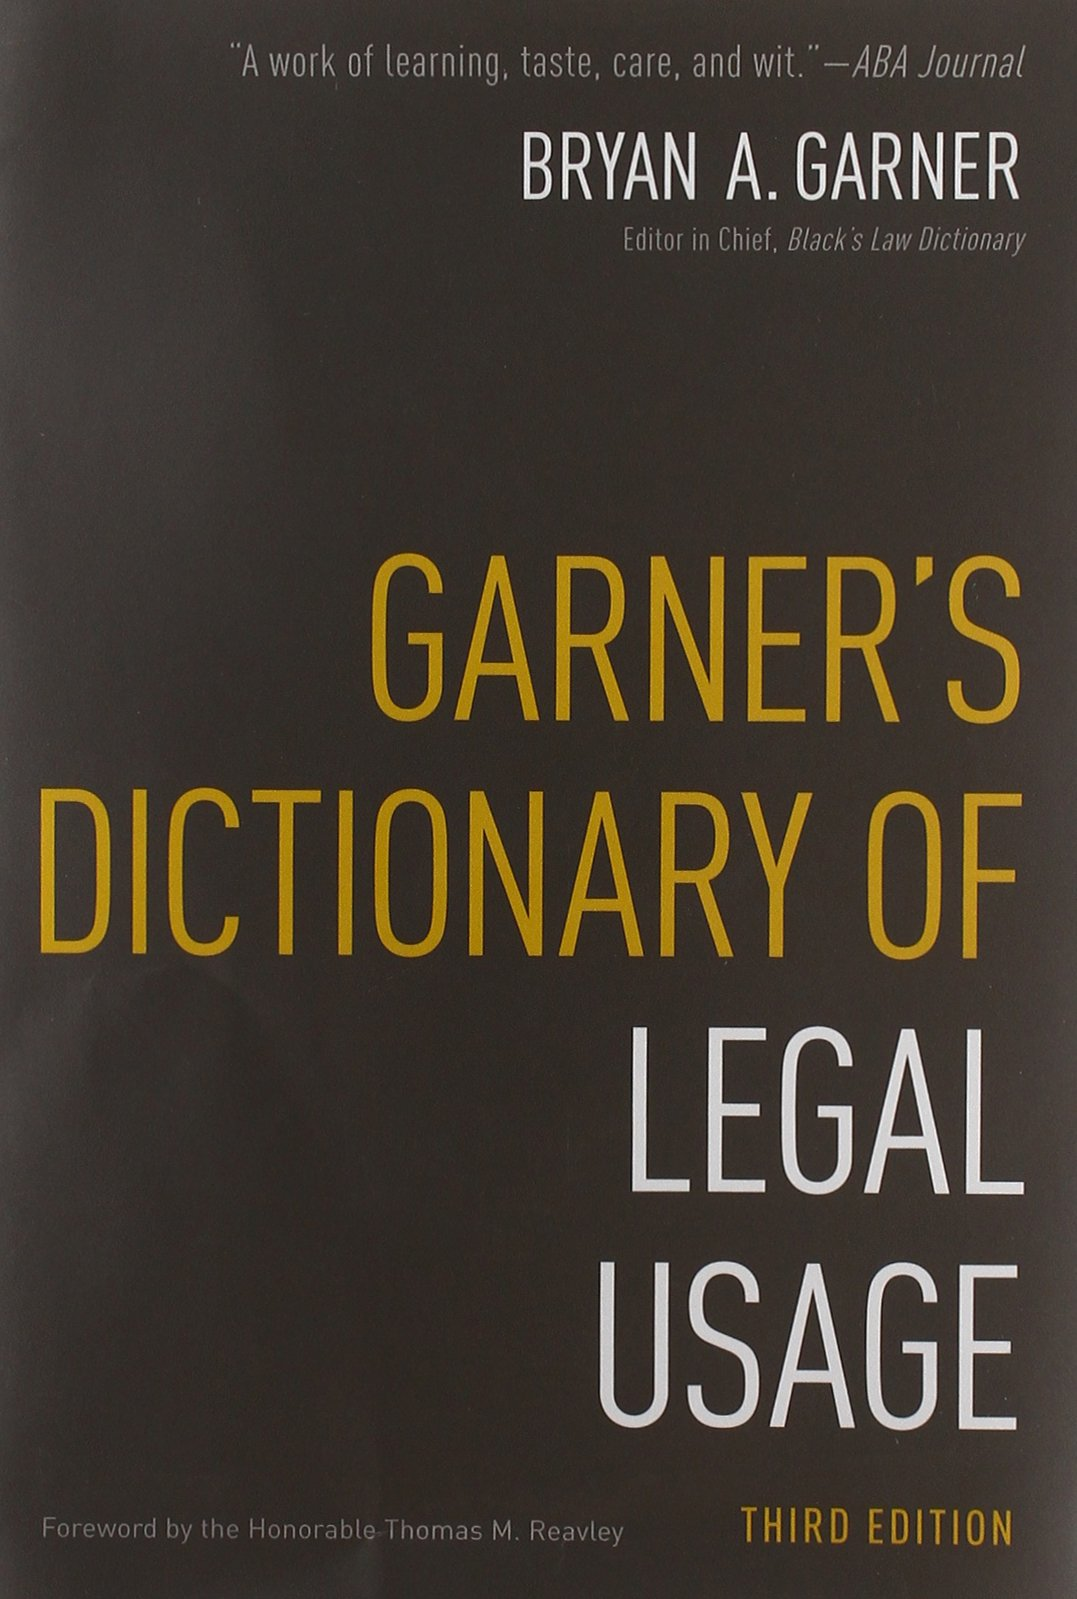 Image OfGarner's Dictionary Of Legal Usage